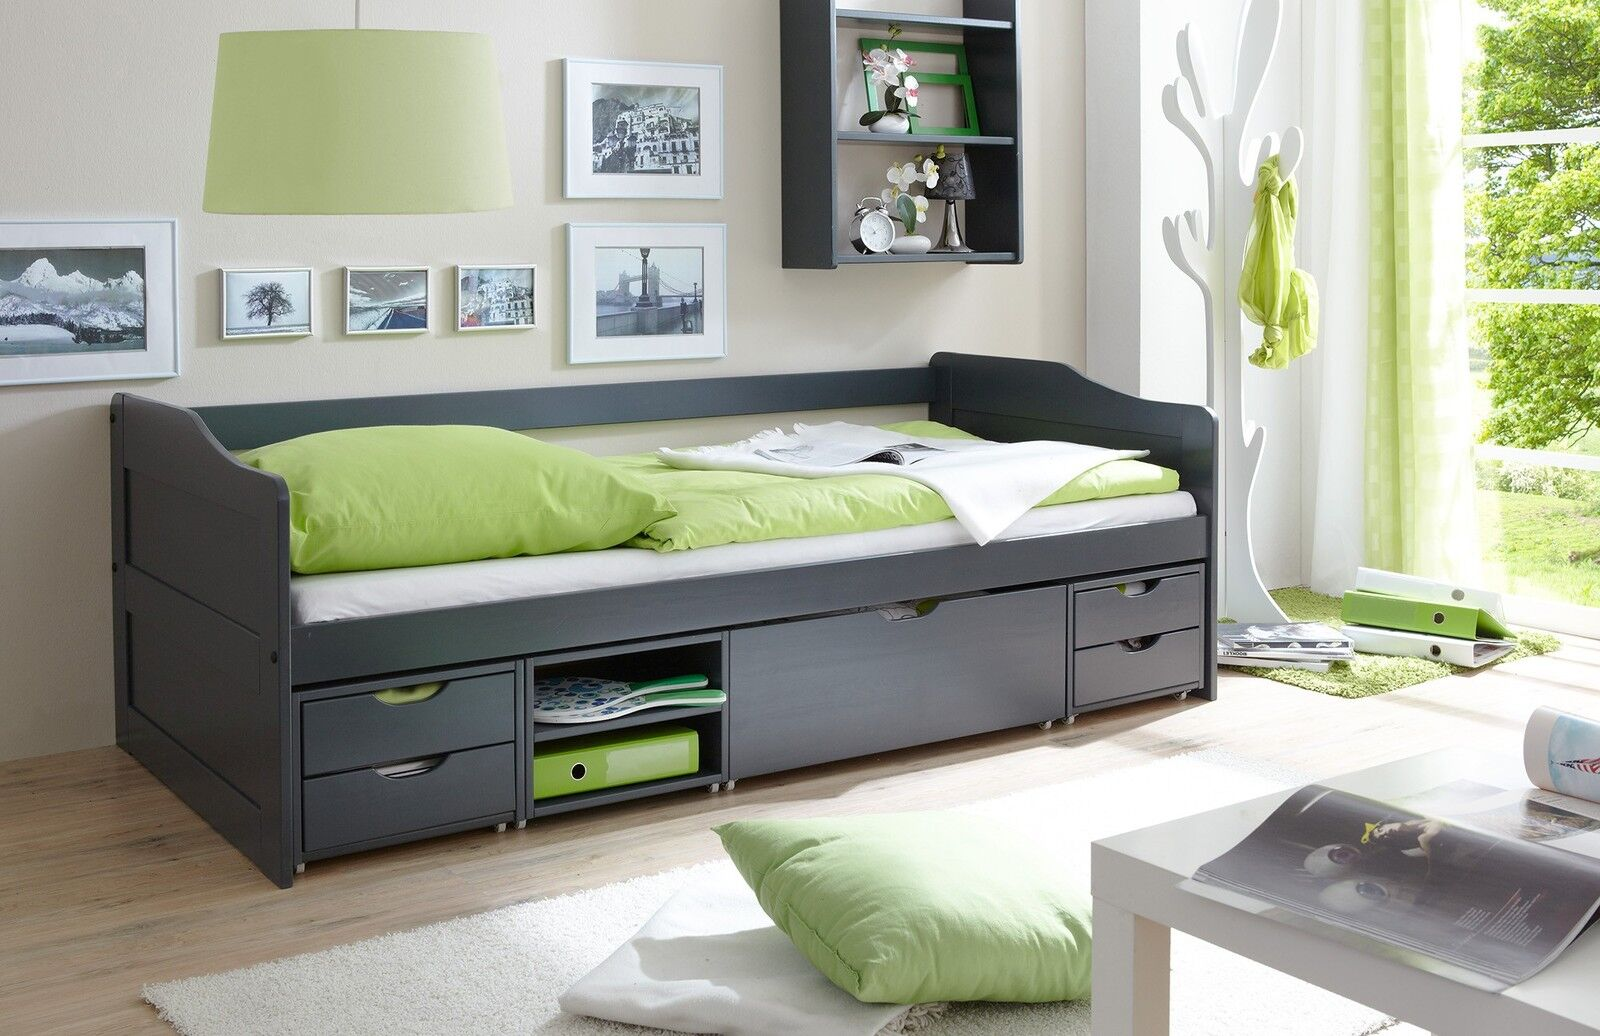 kojenbett 90x200 sofabett g stebett funktionsbett bett kinderbett massiv grau eur 372 90. Black Bedroom Furniture Sets. Home Design Ideas